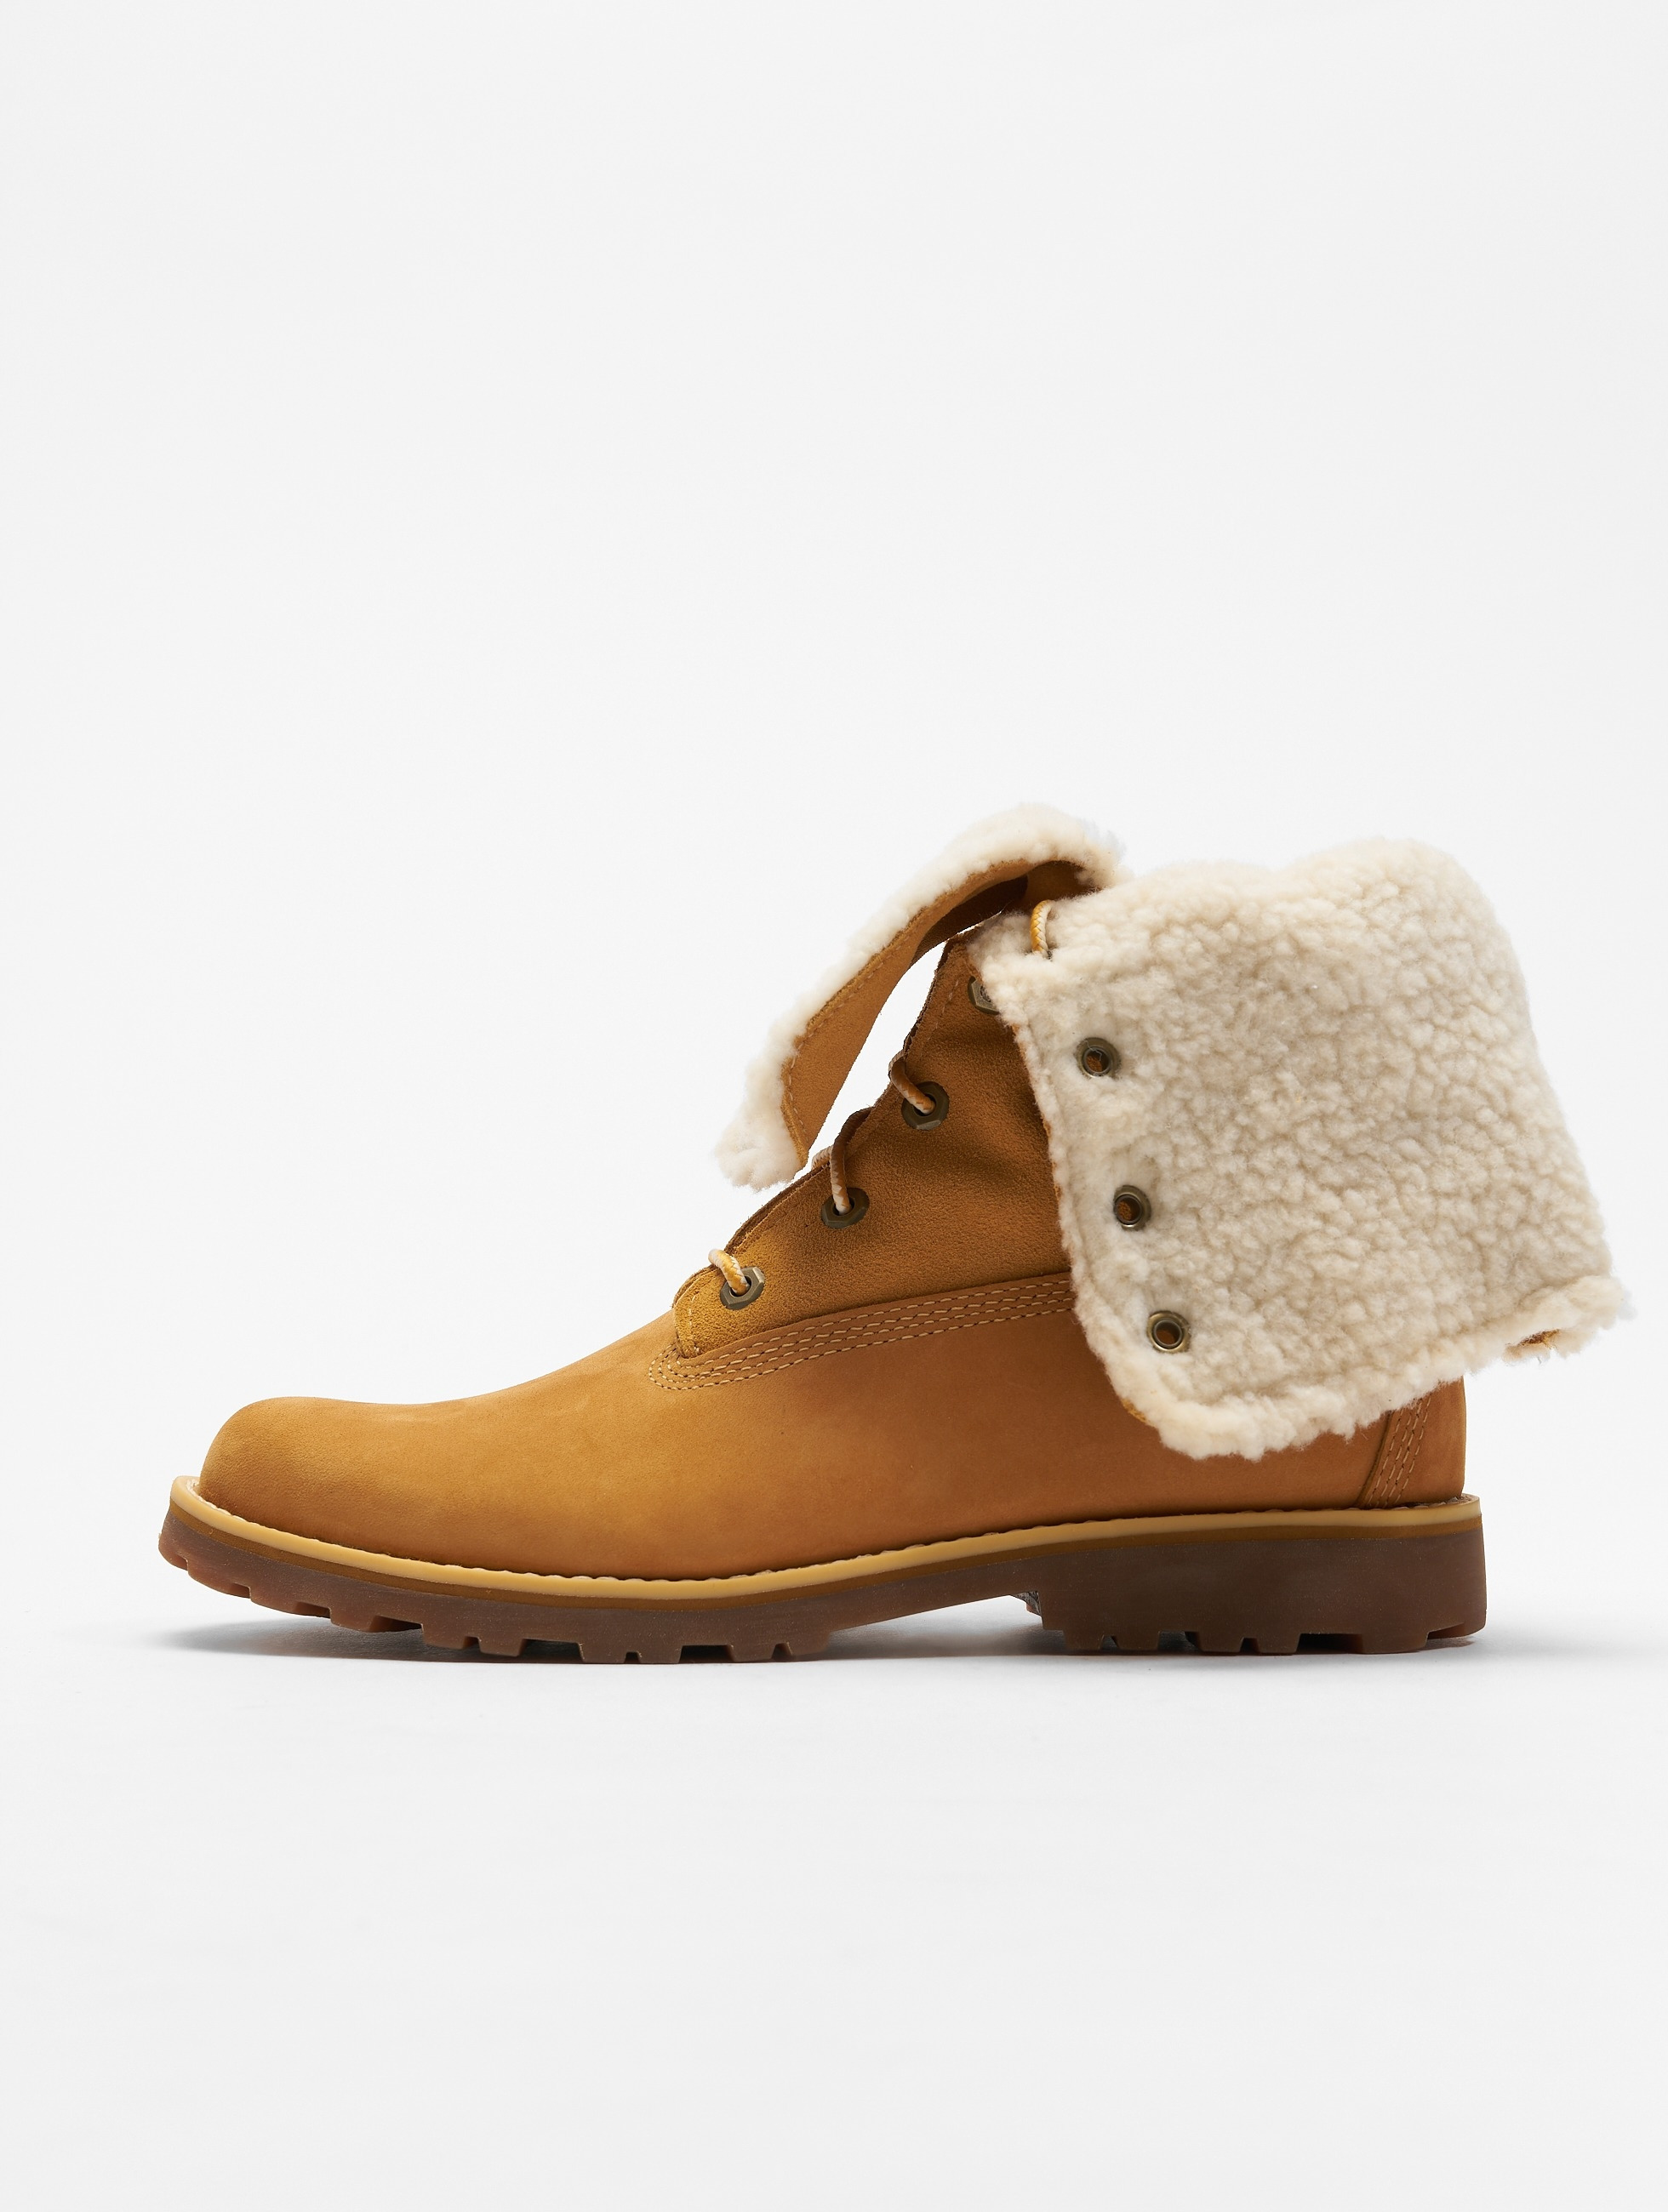 Timberland Frauen Boots 6 Inch Waterproof Shearling in beige